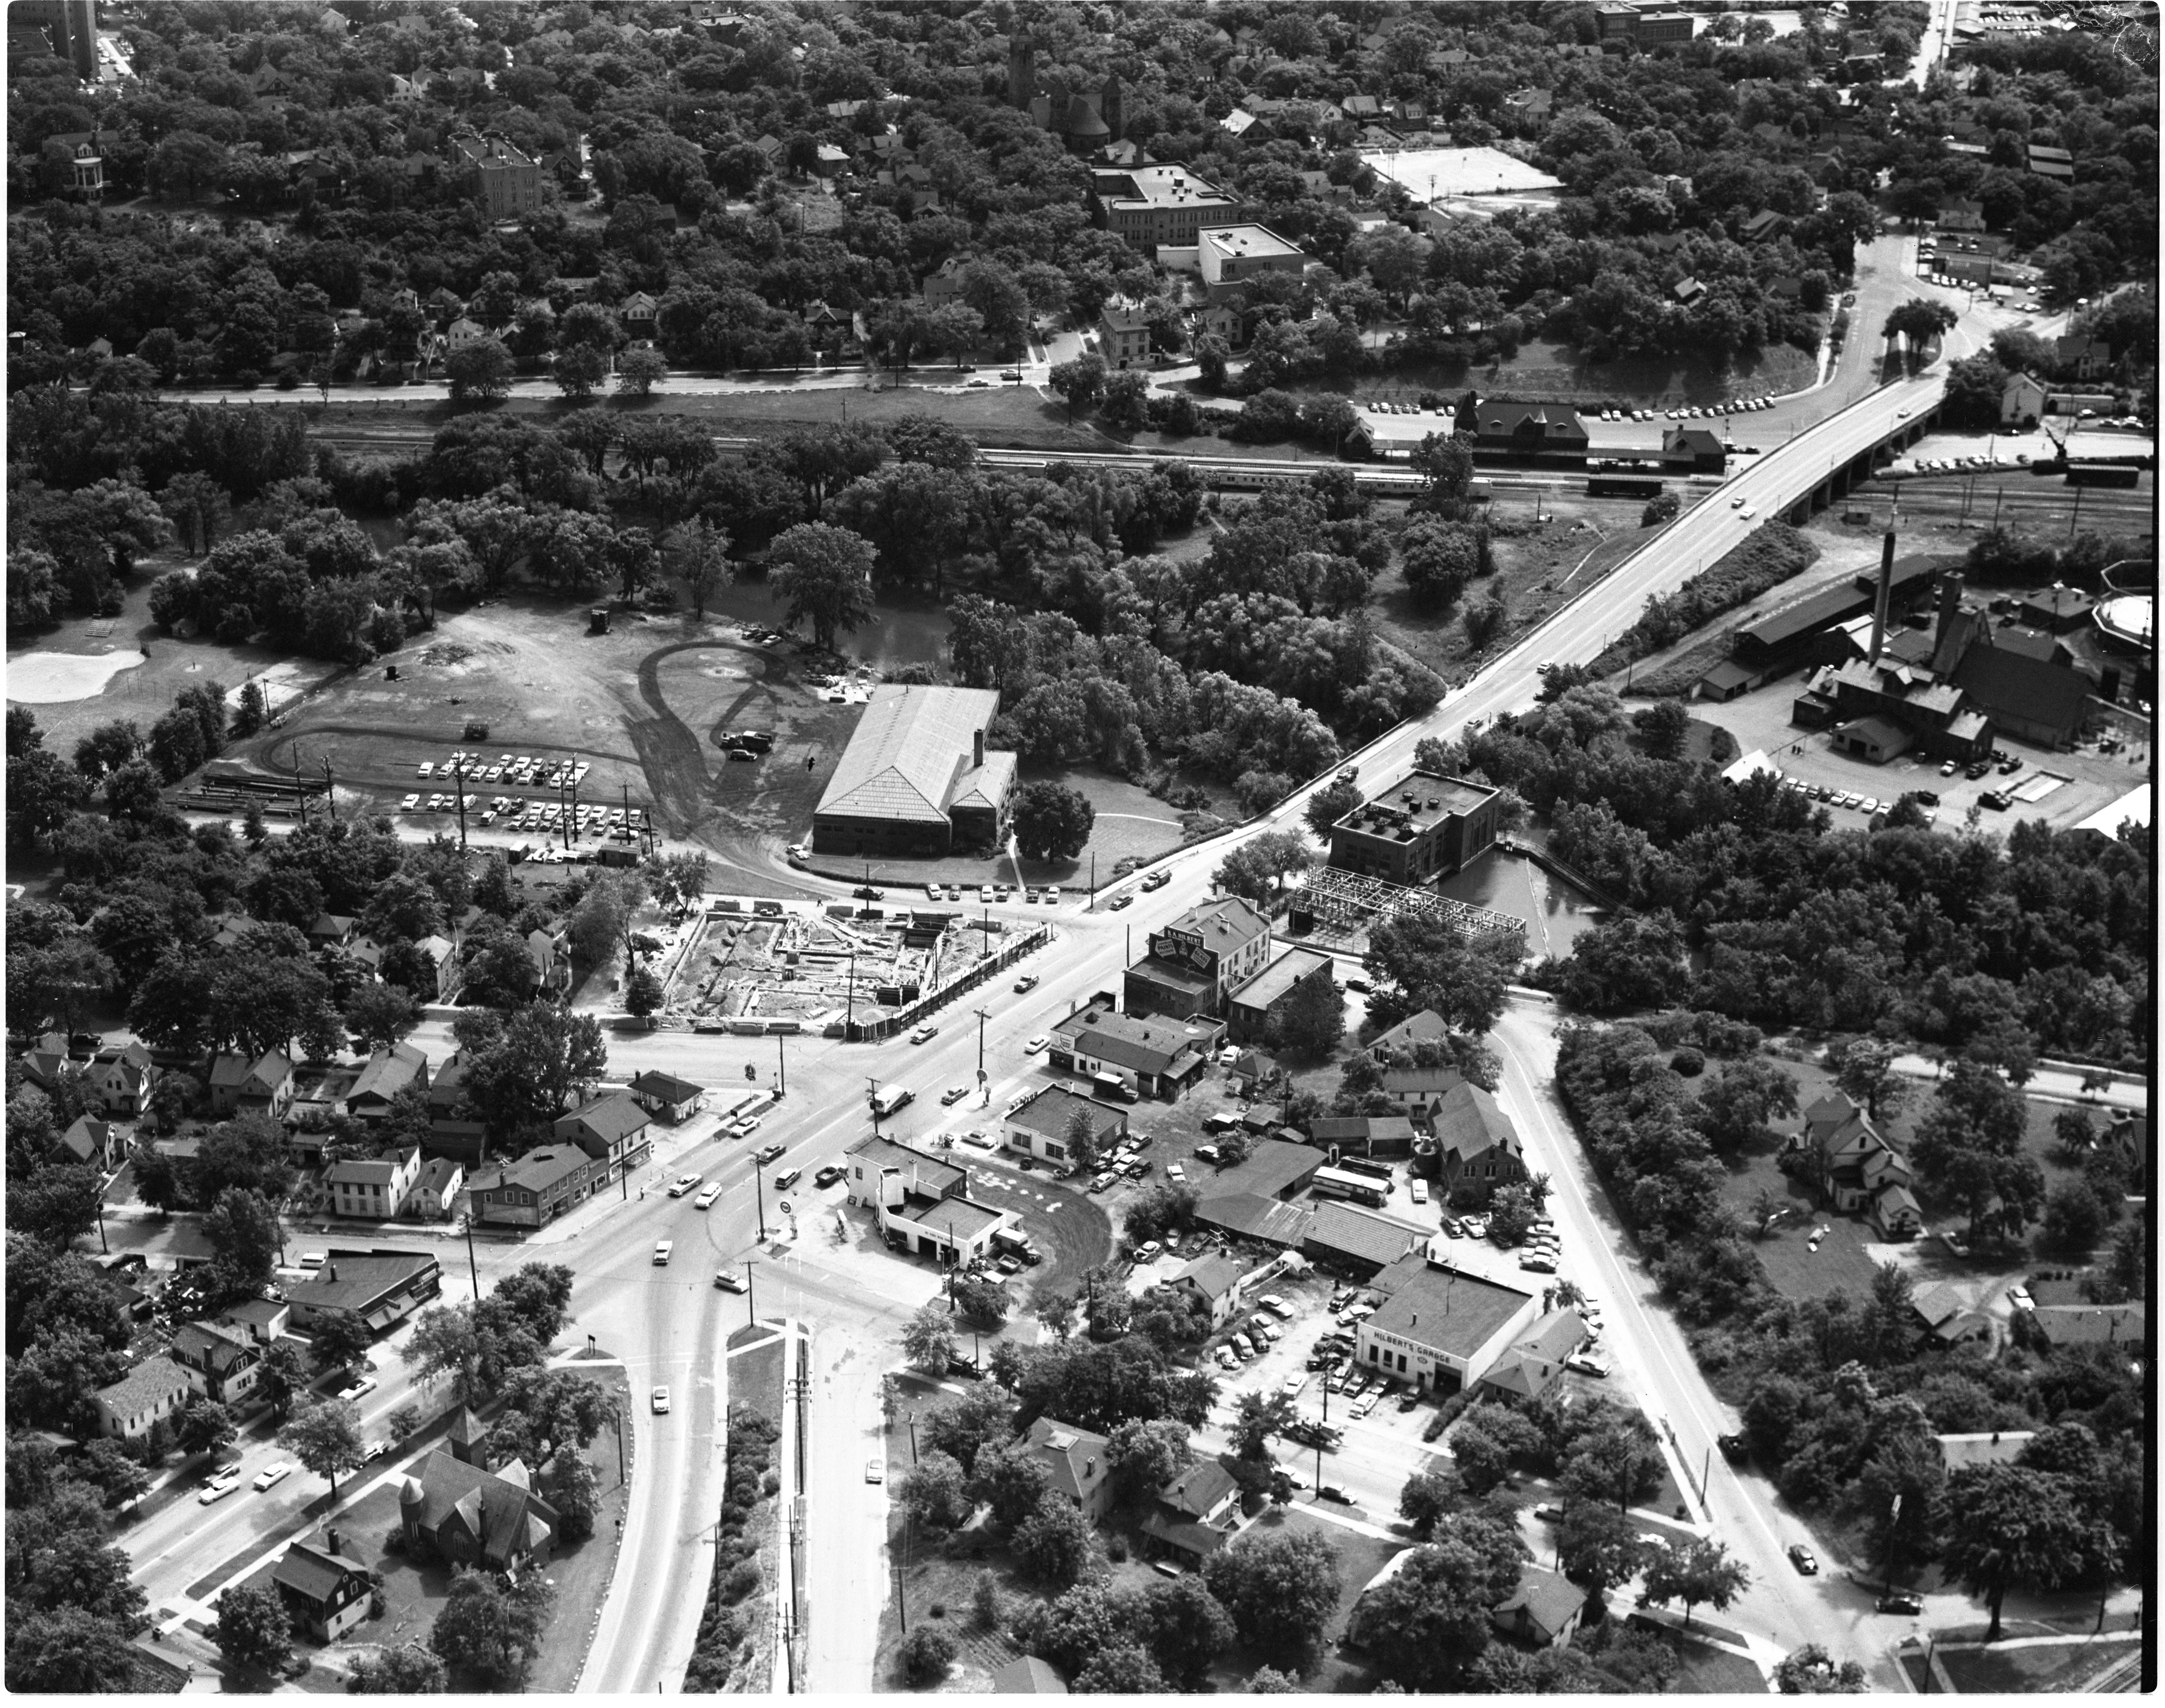 Aerial View Of University Motel Construction - Broadway Between Wall & Canal Streets And Broadway Bridge, July 1956 image